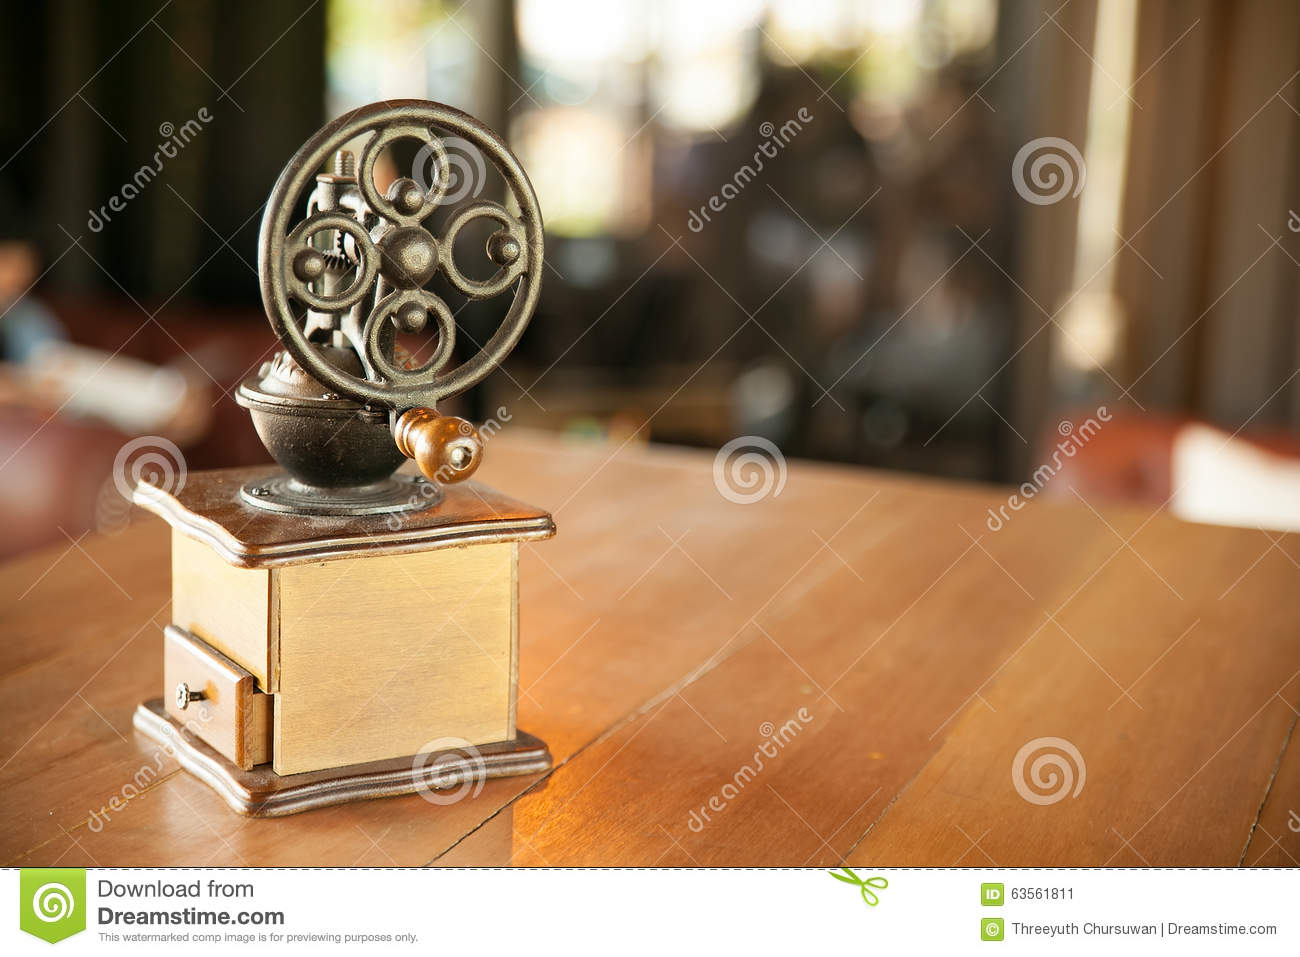 Old Wooden Coffee Grinder With Handle In Shop Background Design Stock Image - Image: 63561811